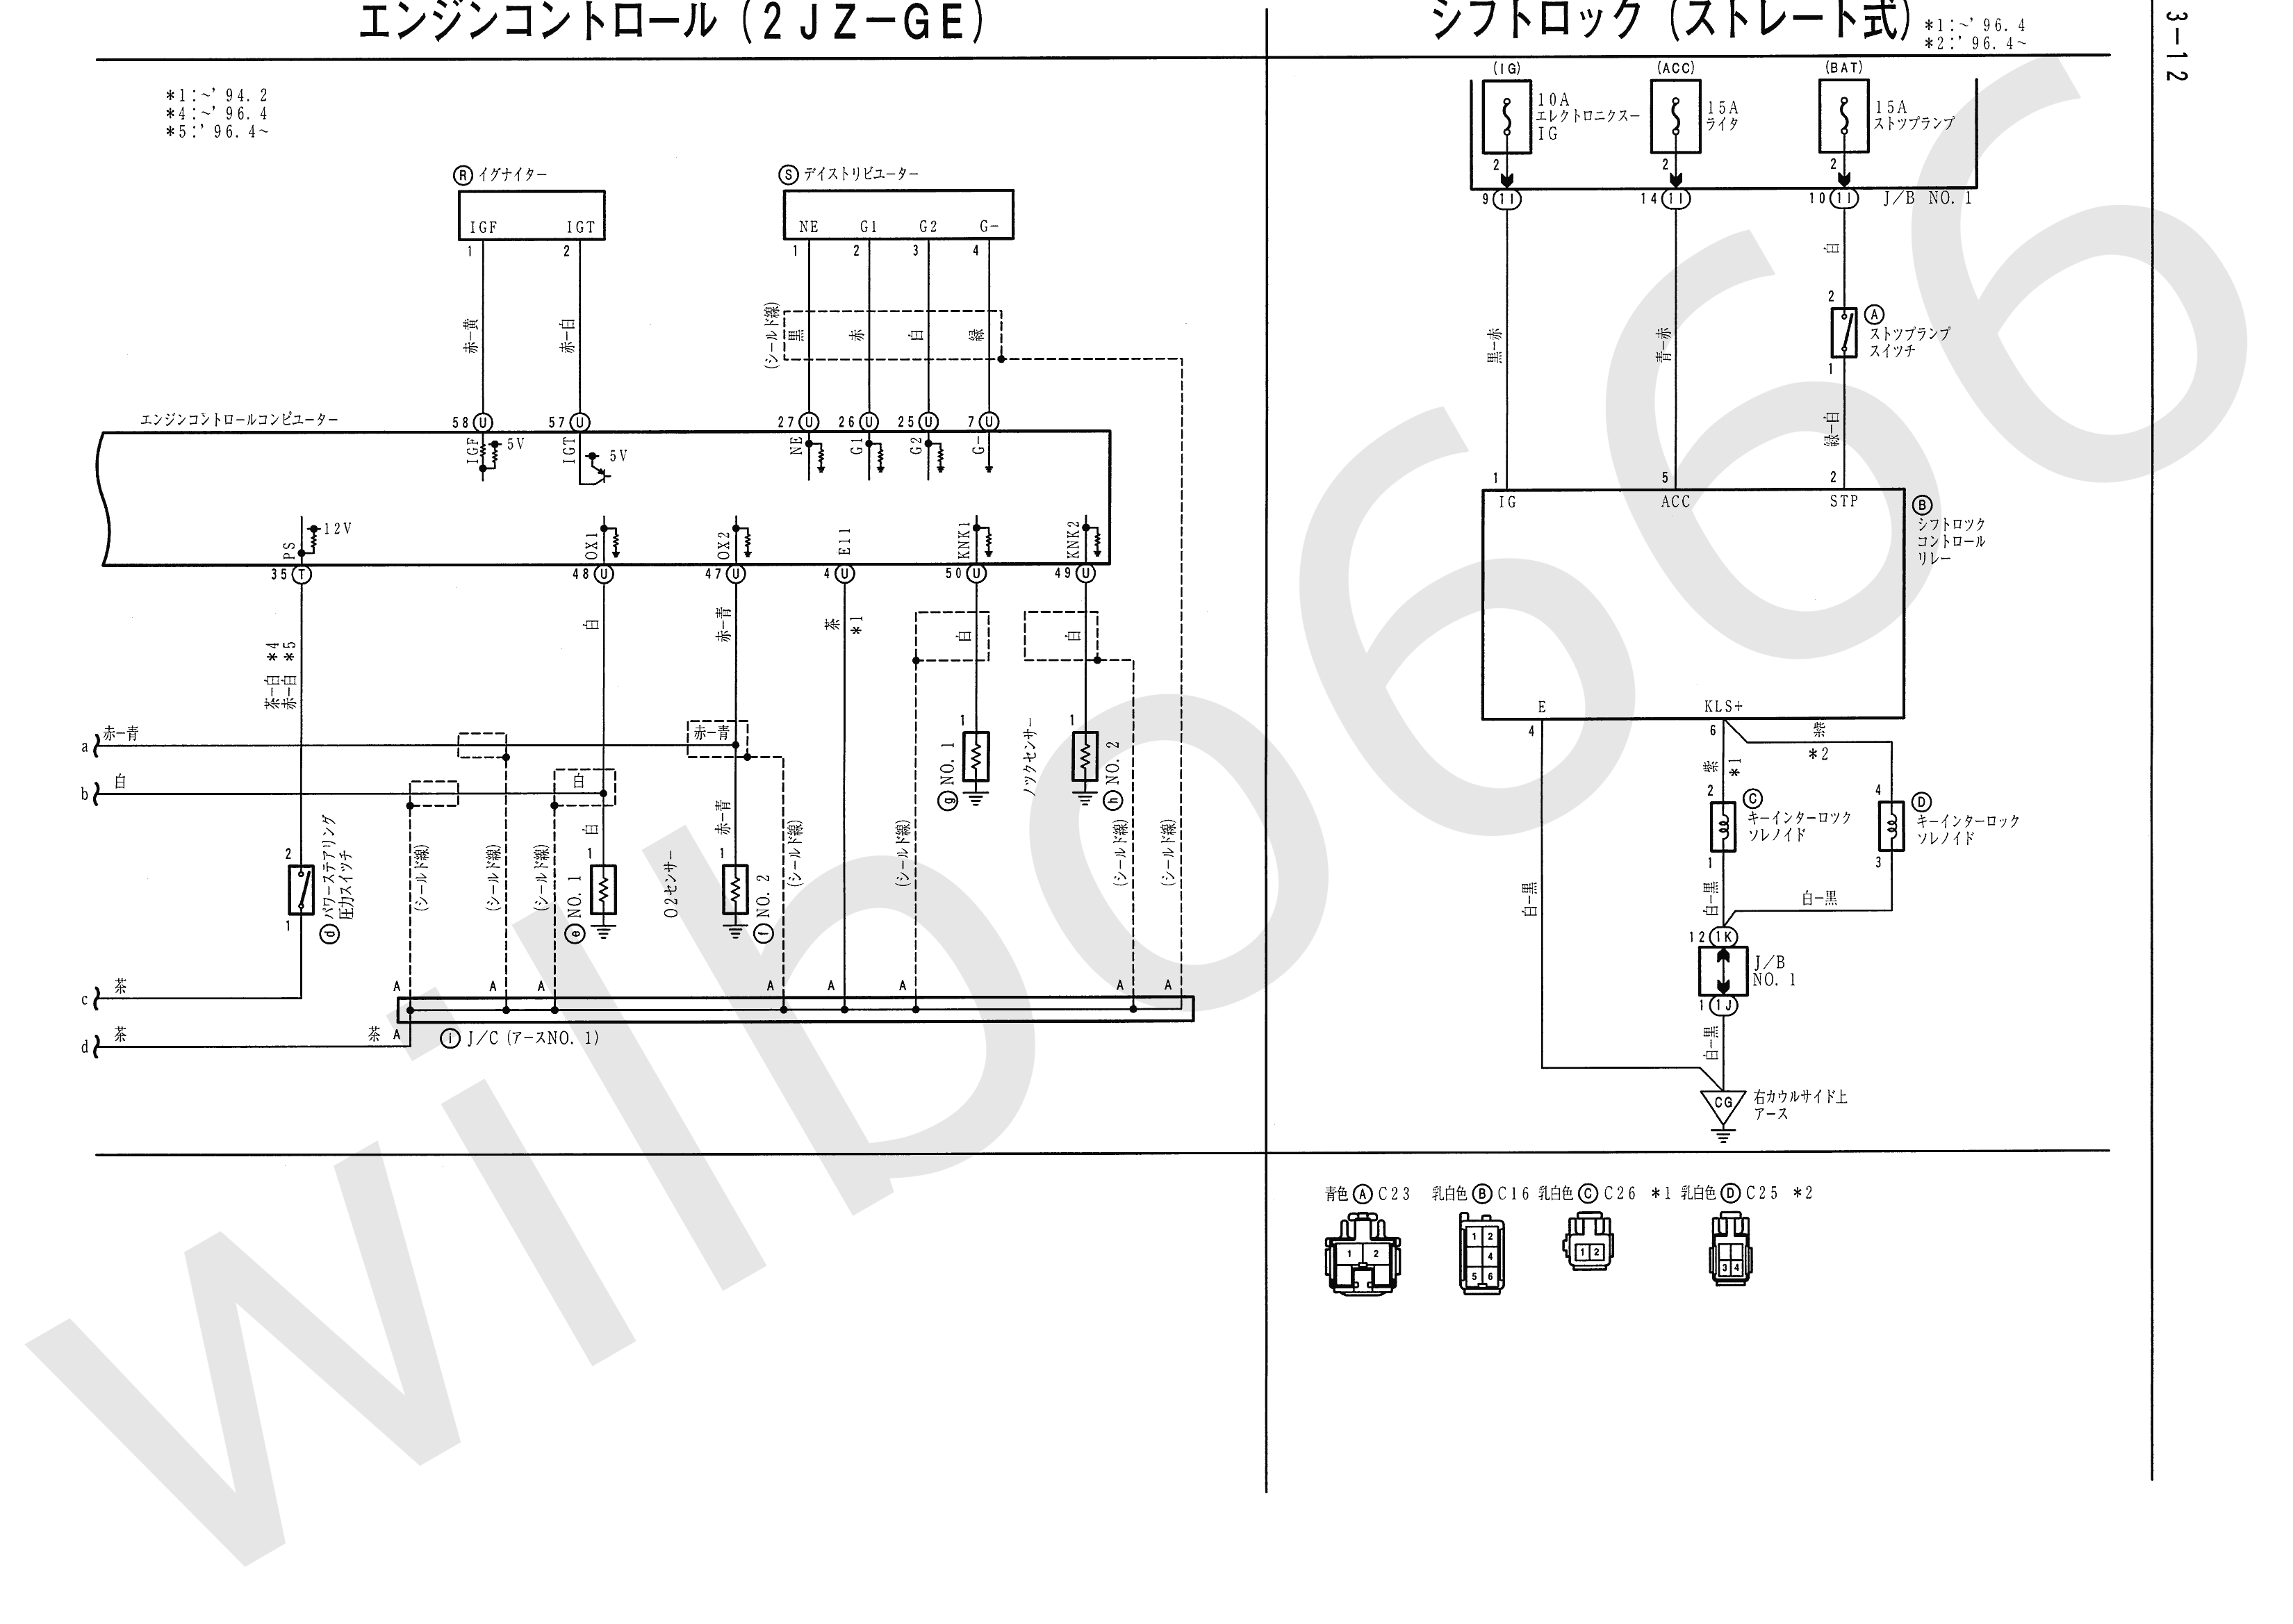 Supra Engine Diagram Reinvent Your Wiring Fenwal Ke554695 Ignition Module 2jz Ge Schematics Diagrams U2022 Rh Schoosretailstores Com 1987 Toyota